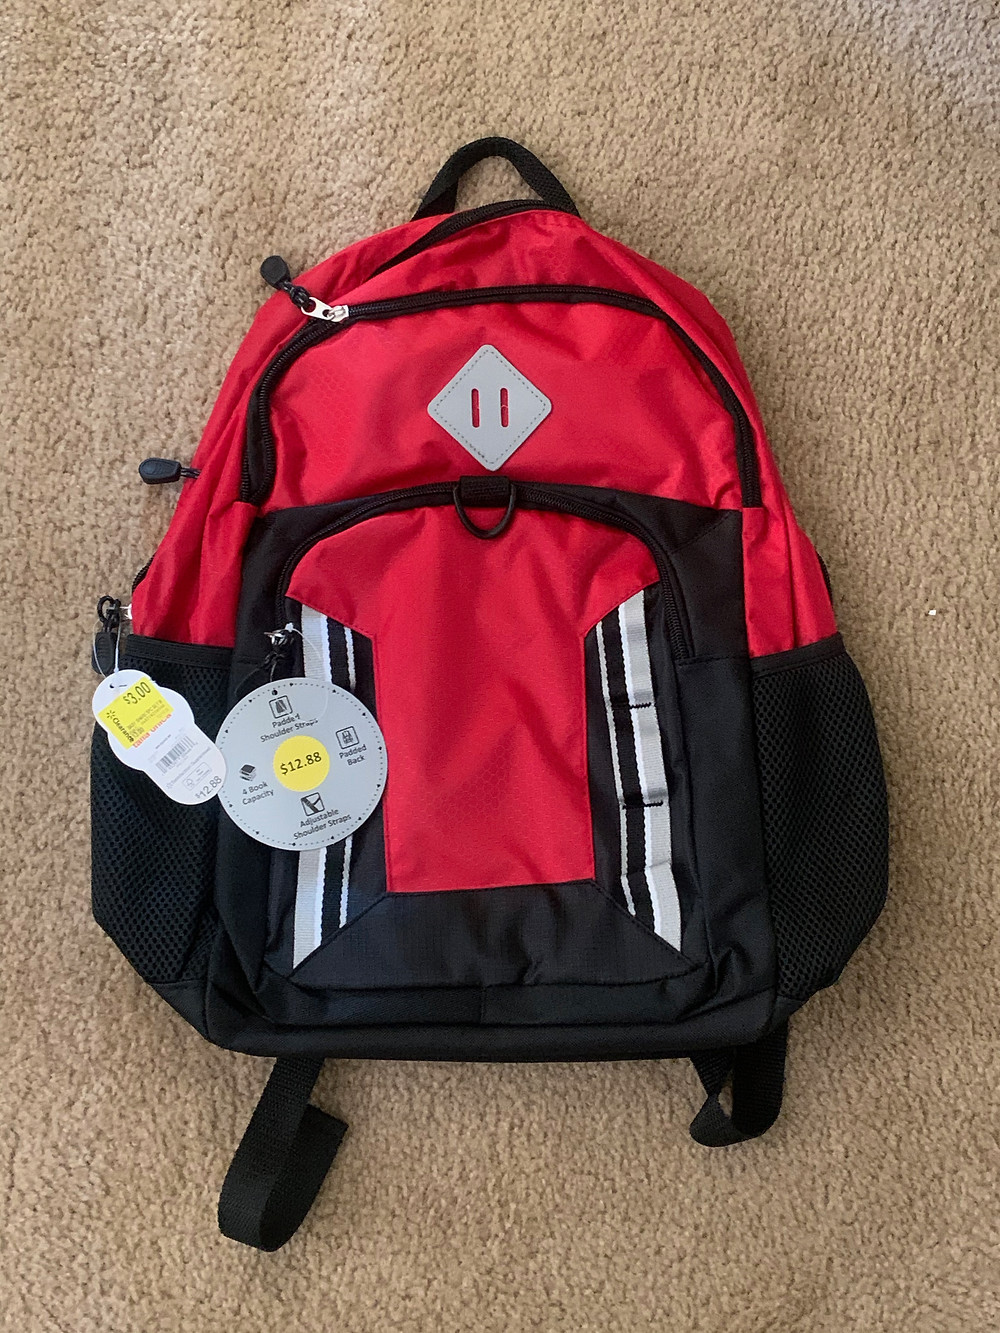 Red backpack for emergency prep grab and go bag